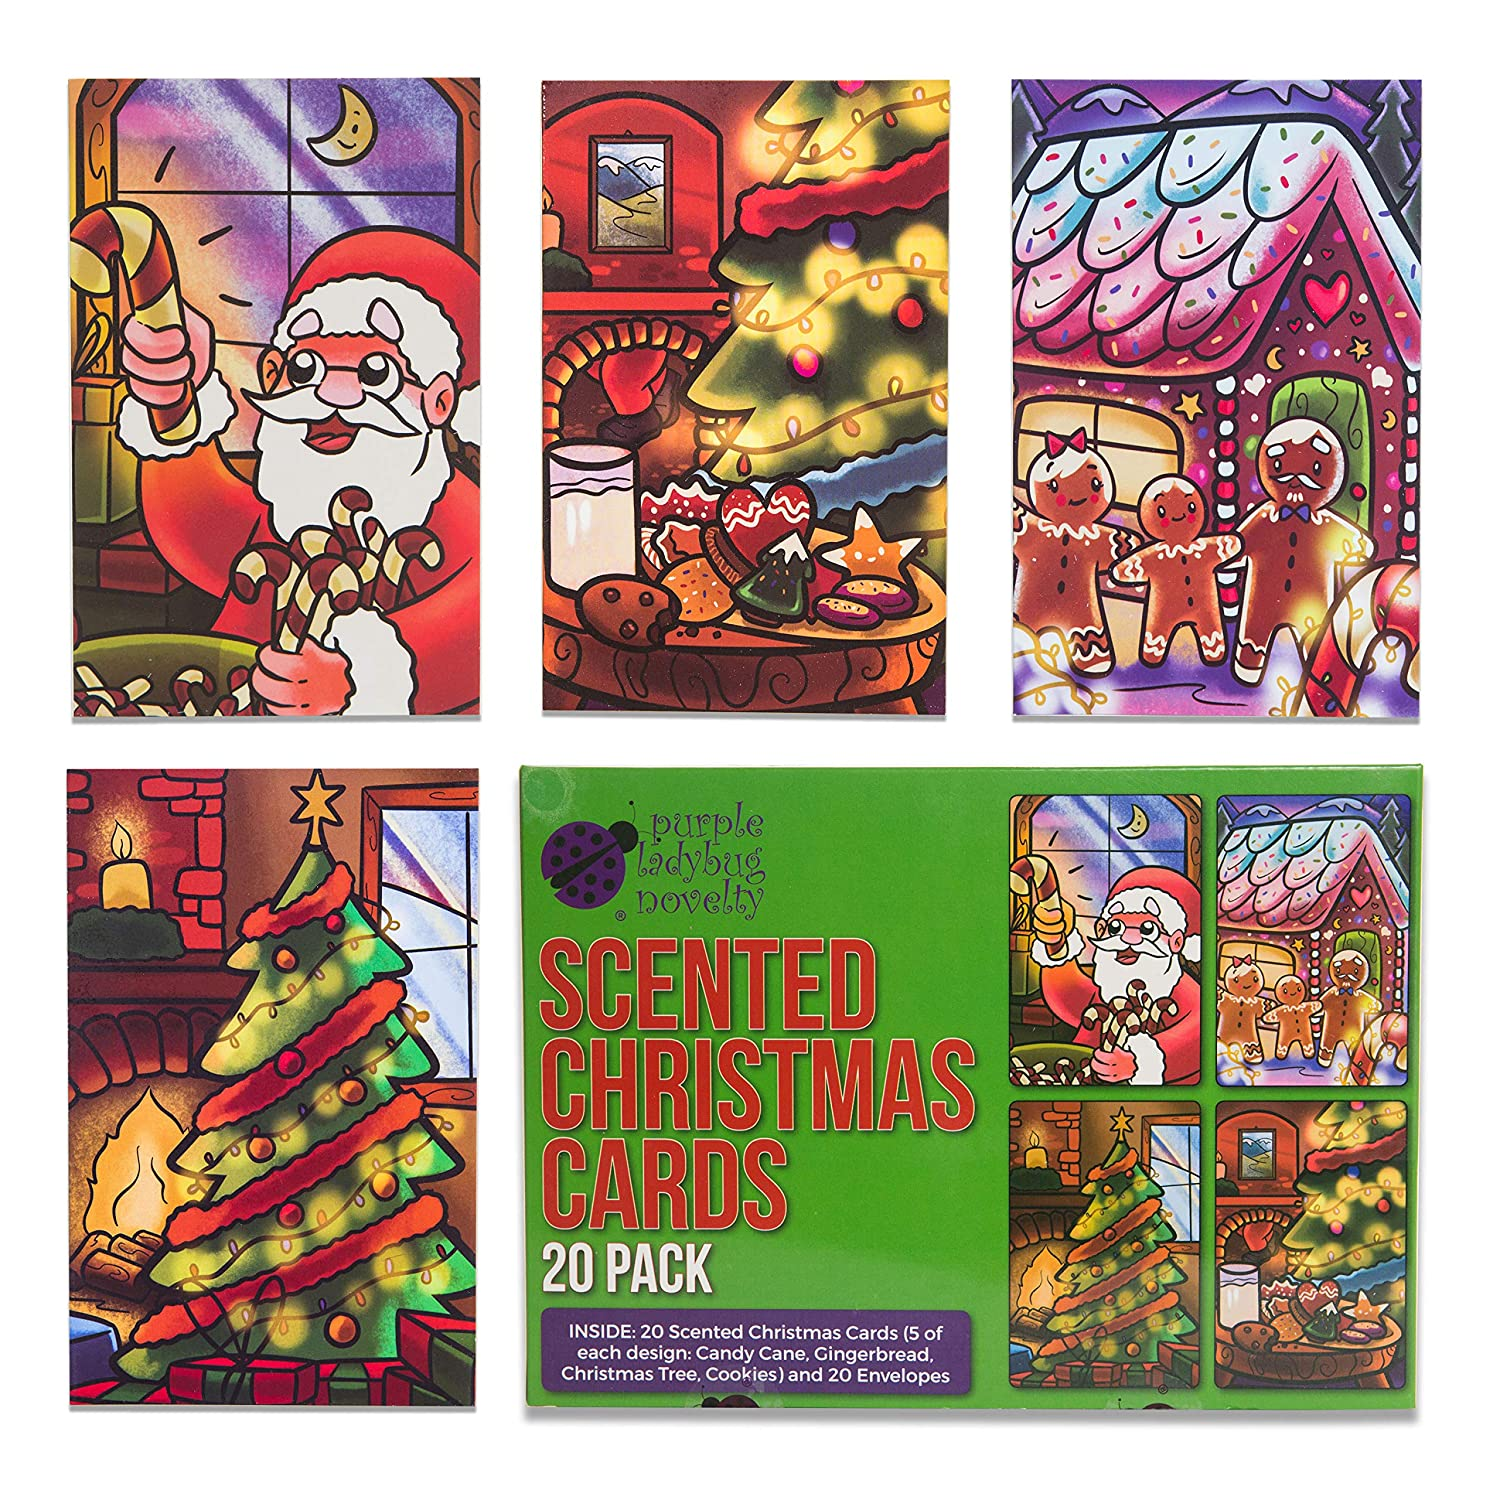 Amazon.com : Scented Christmas Cards Value Pack - Scratch and Sniff ...